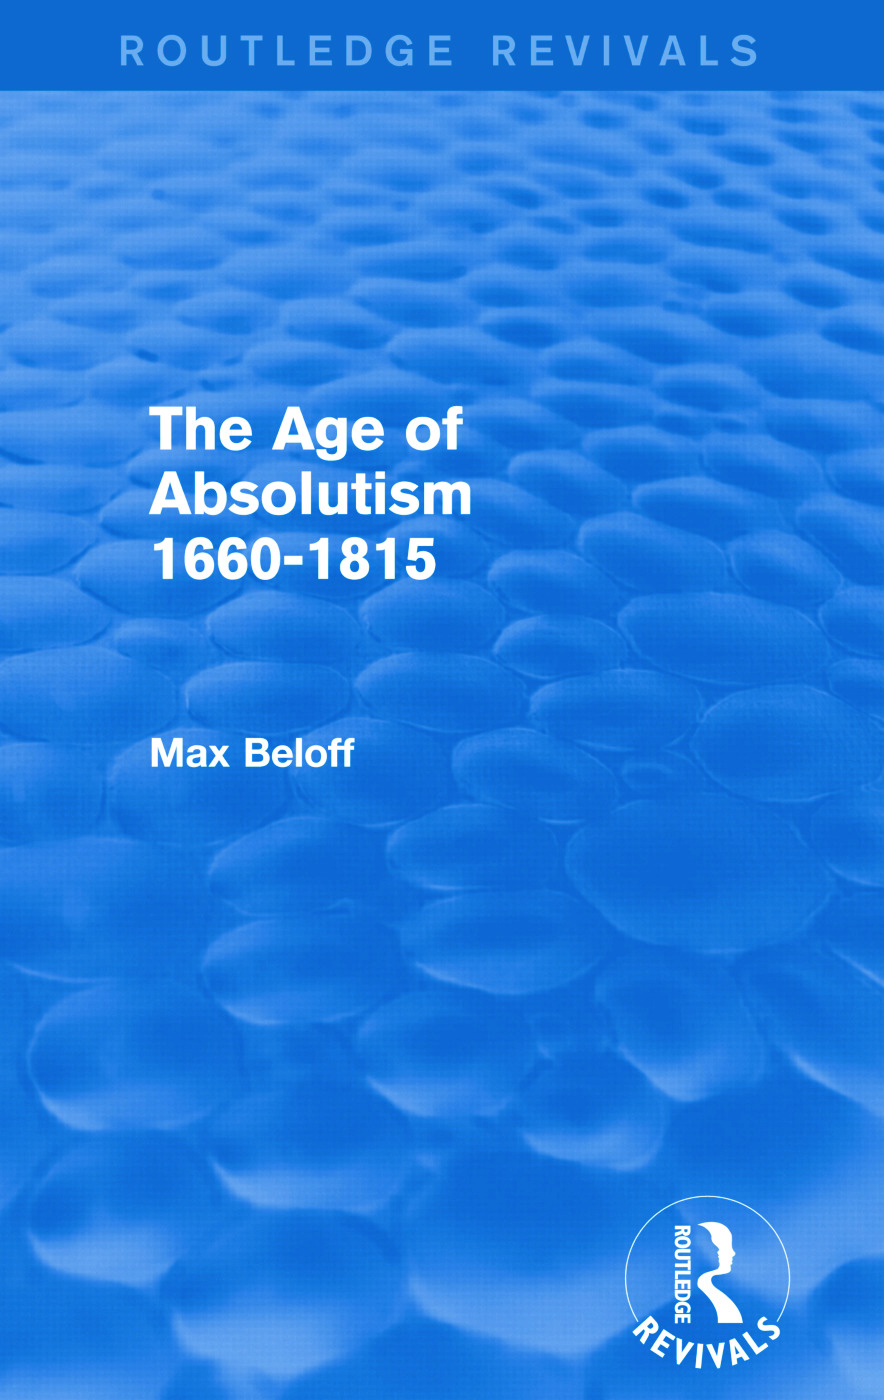 The Age of Absolutism 1660-1815 (Routledge Revivals) book cover